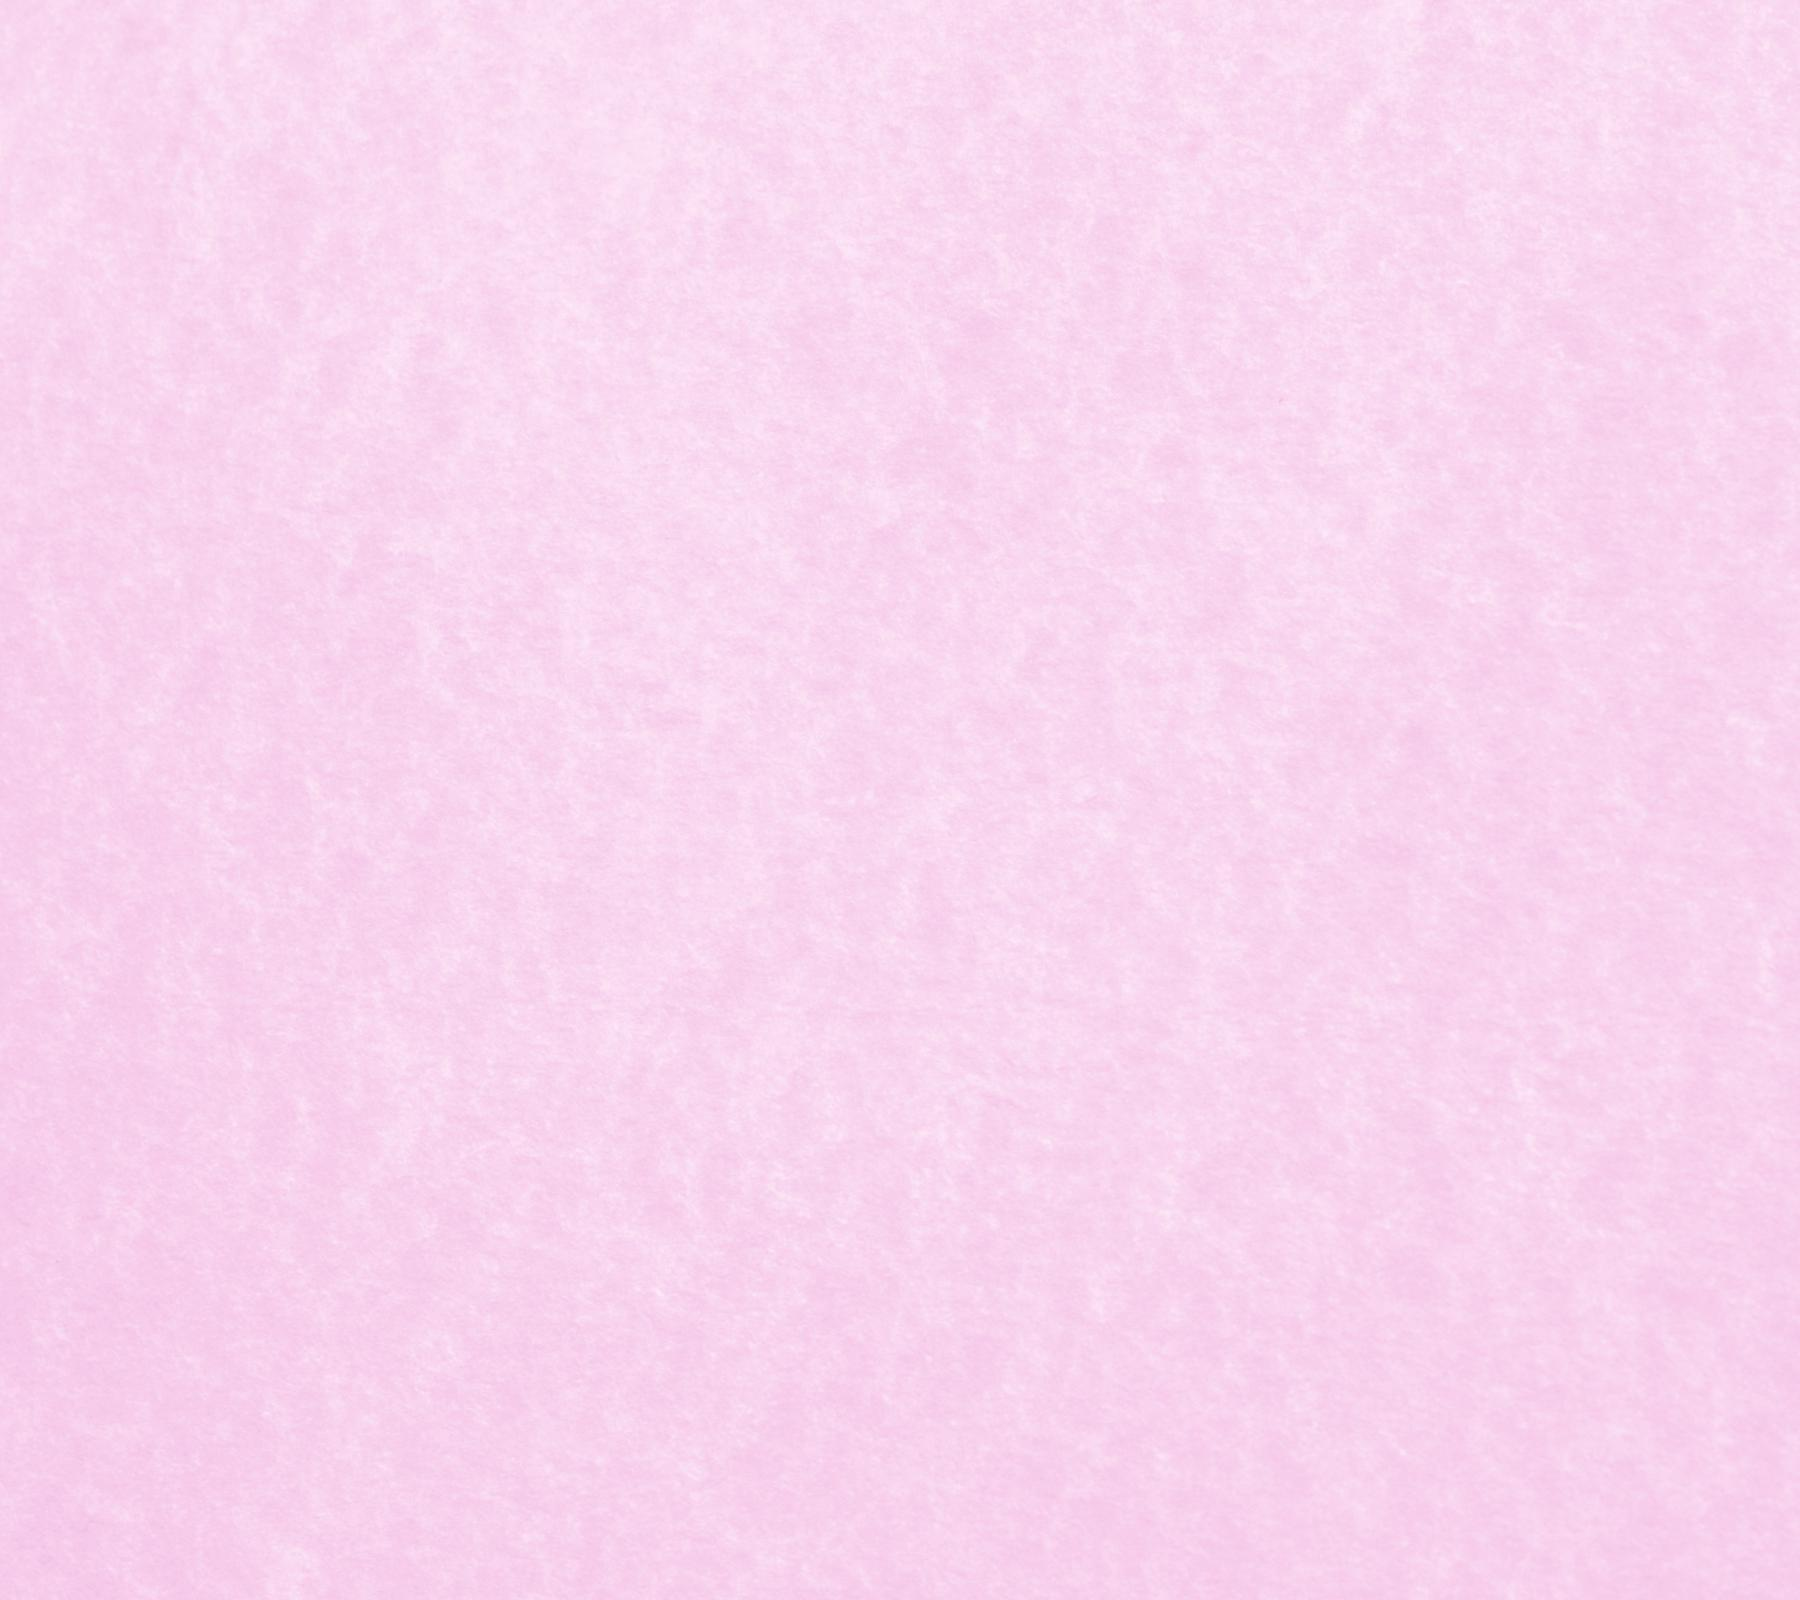 Light Pink Backgrounds - Wallpaper Cave